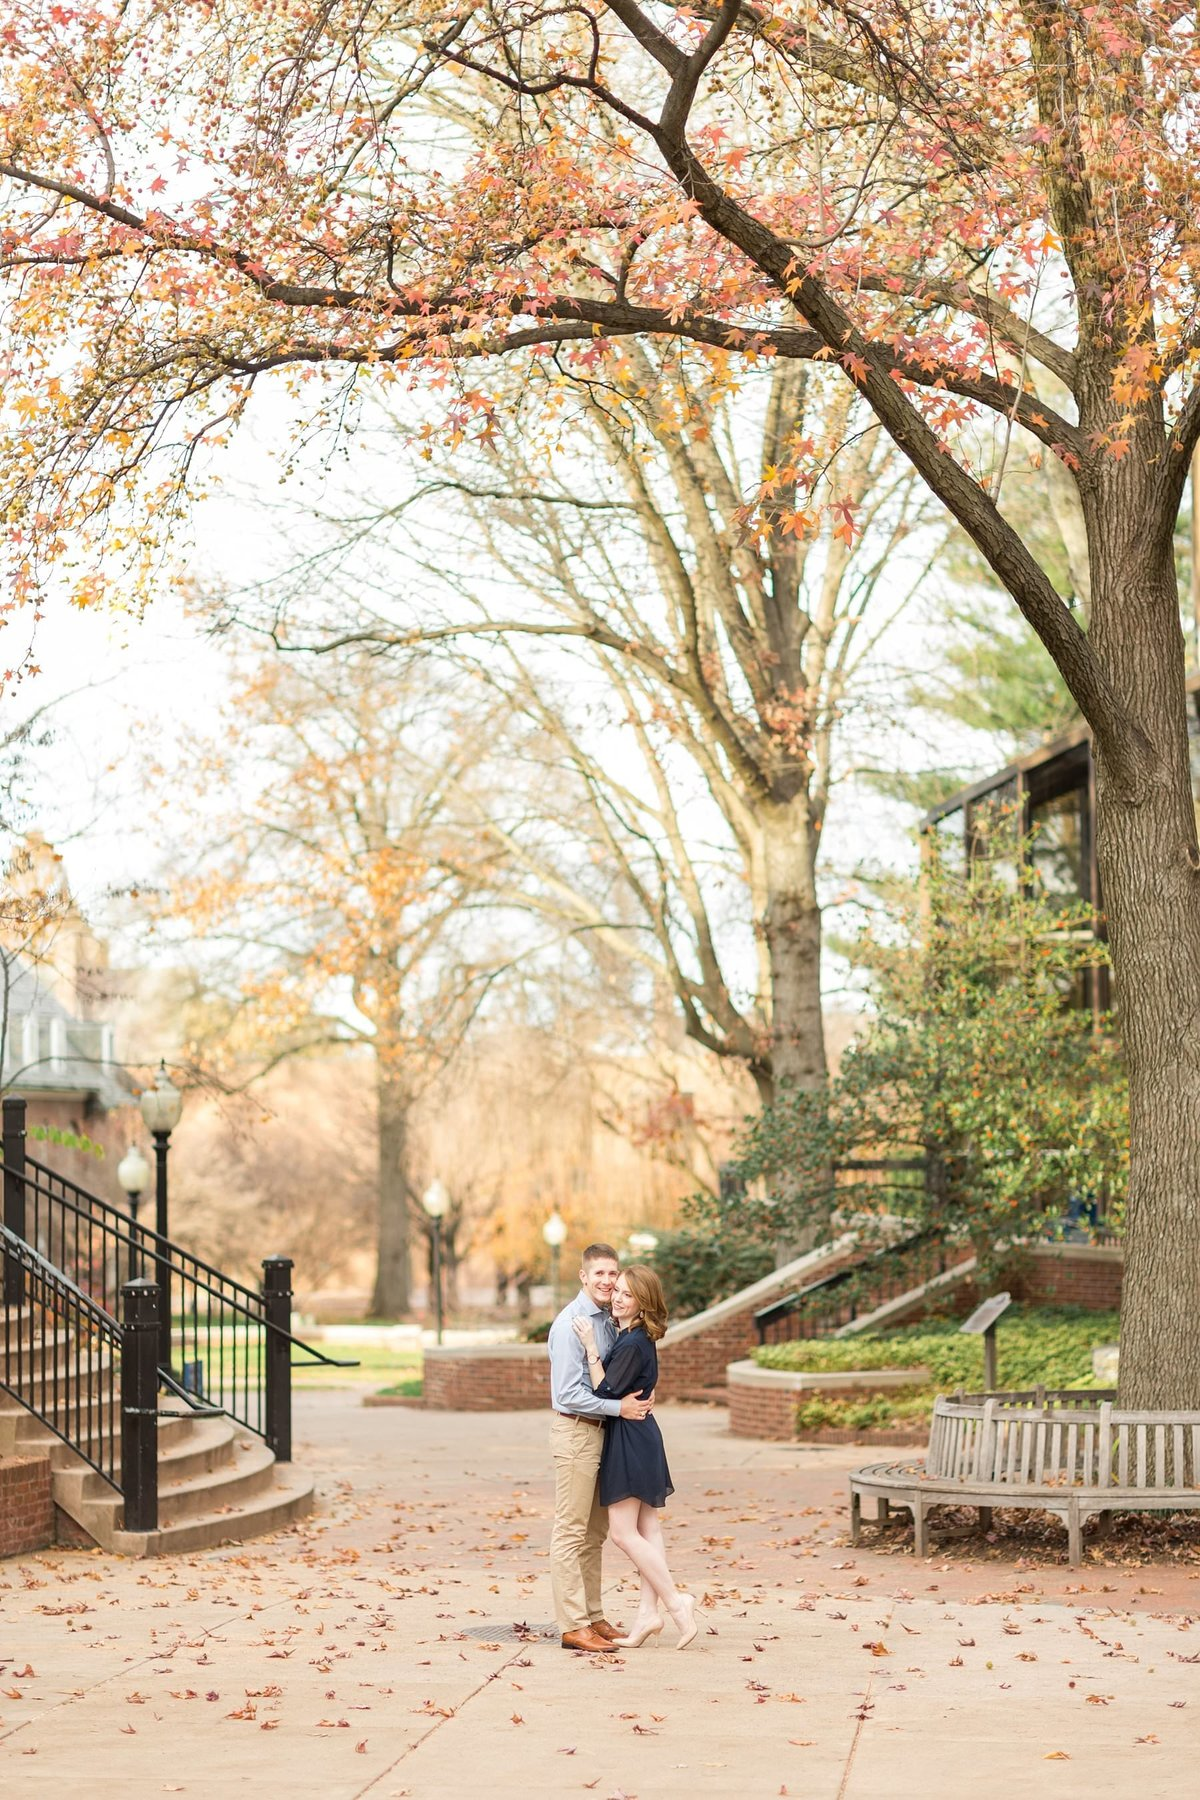 Bri-Cibene-Photography-Engagements_0046